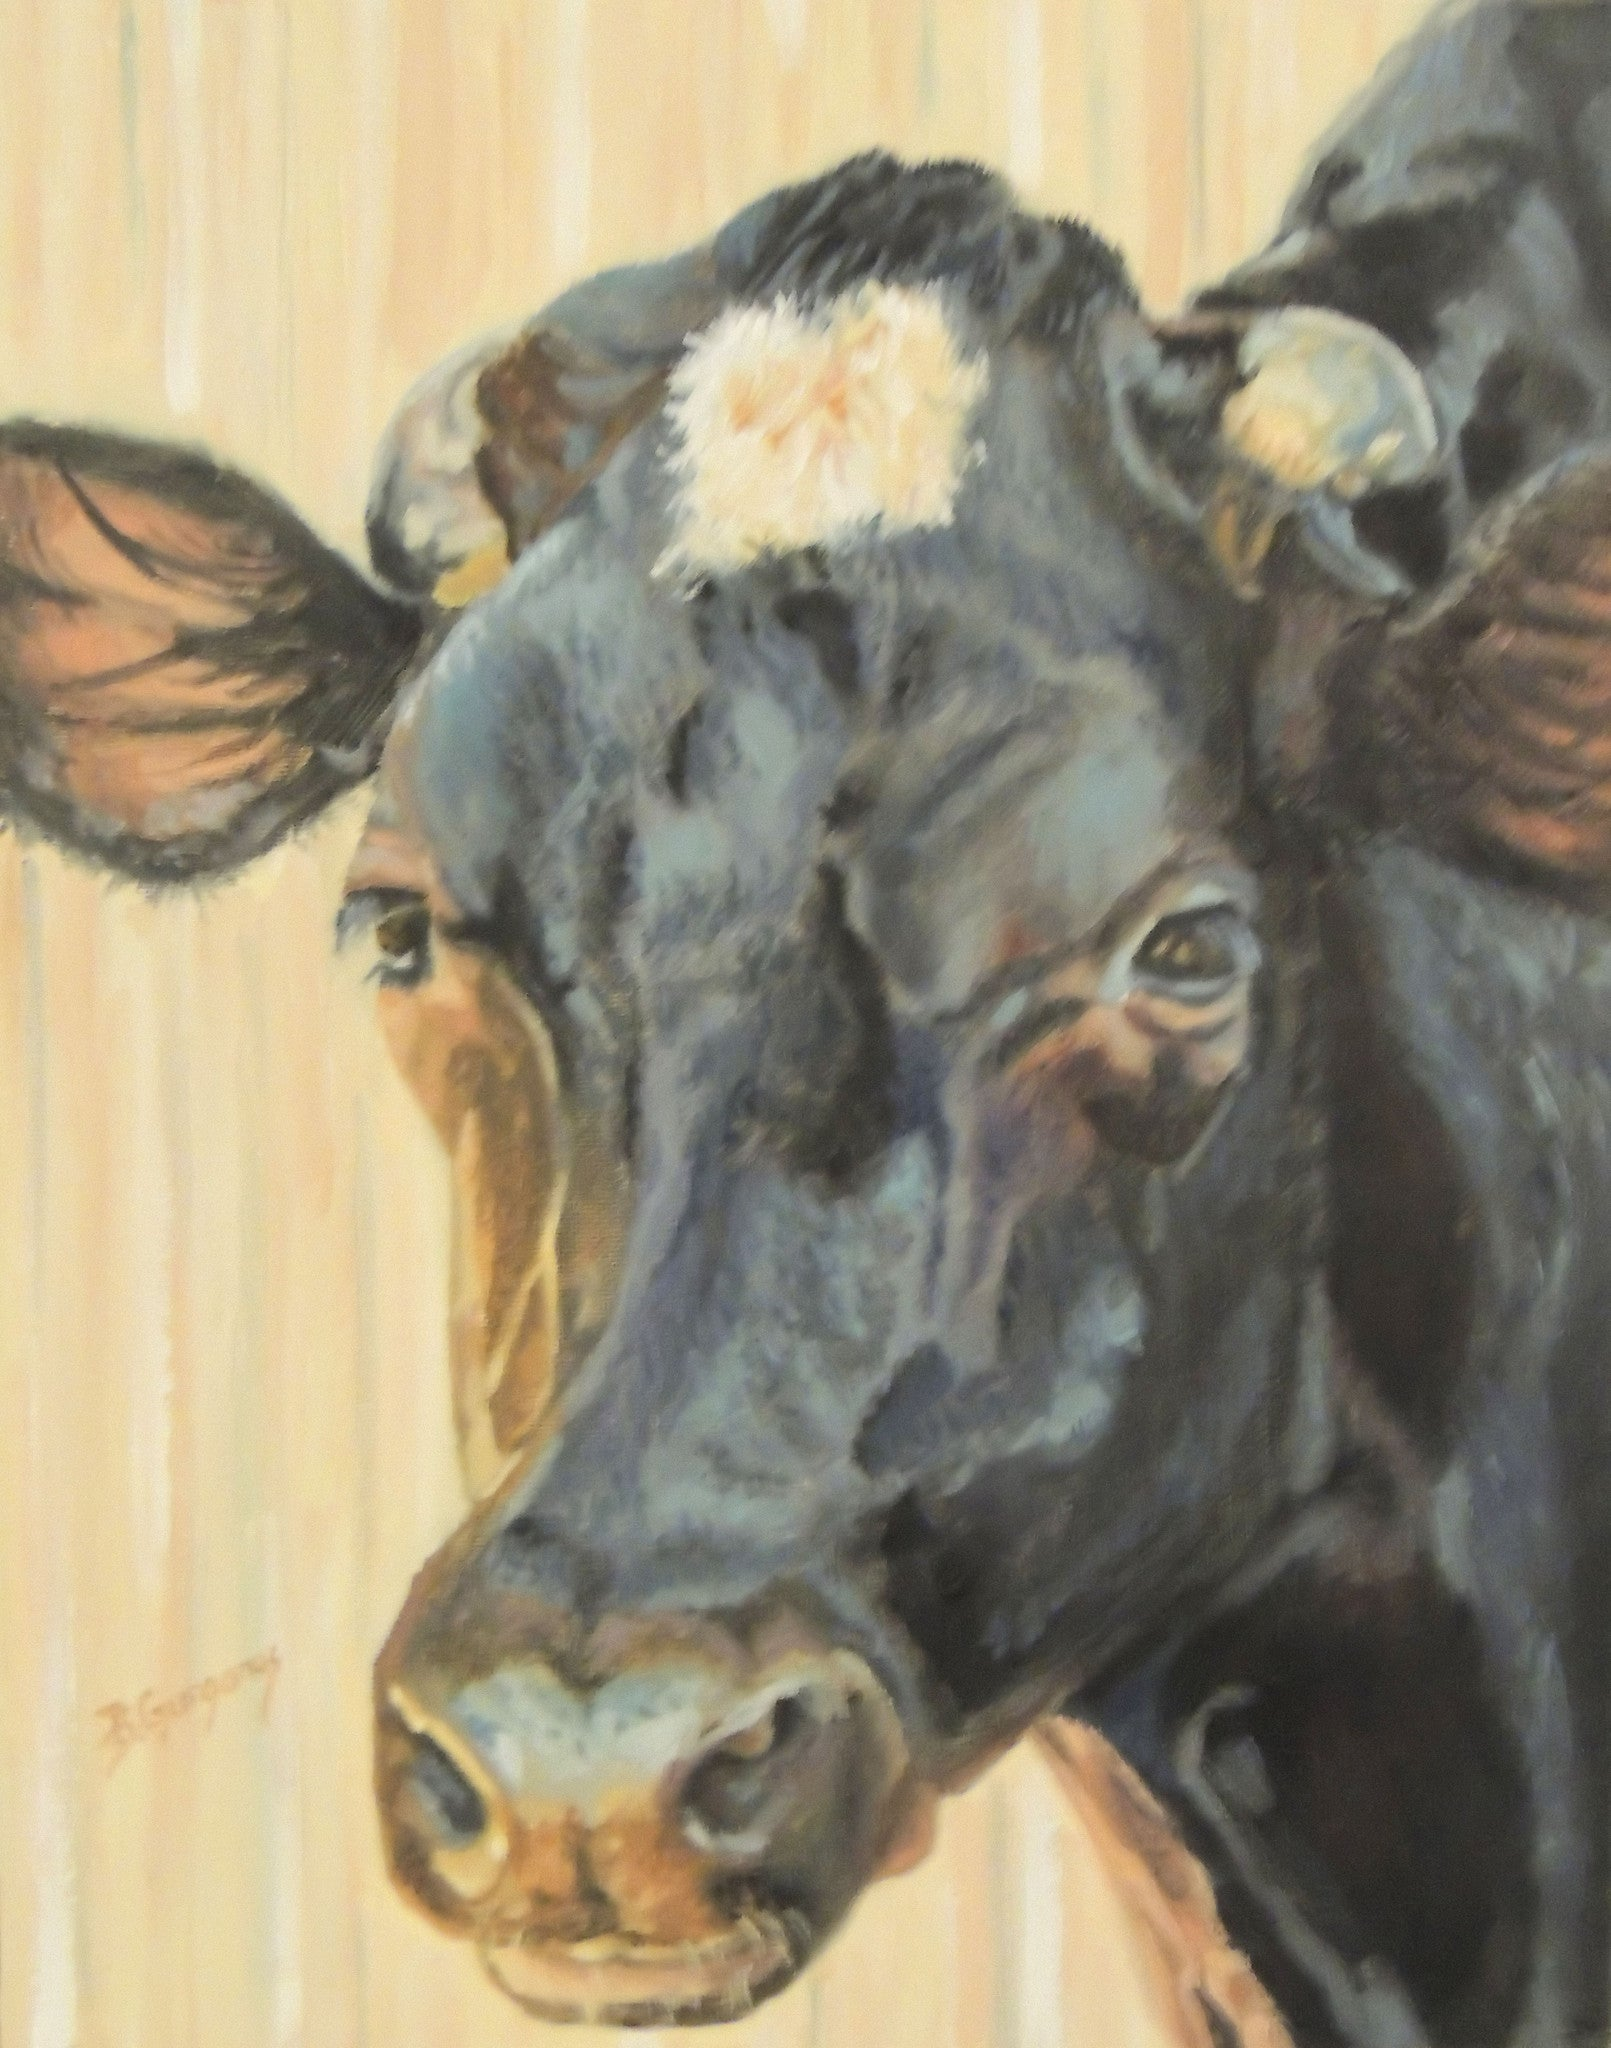 Moo-cella from the Down On the Farm collection